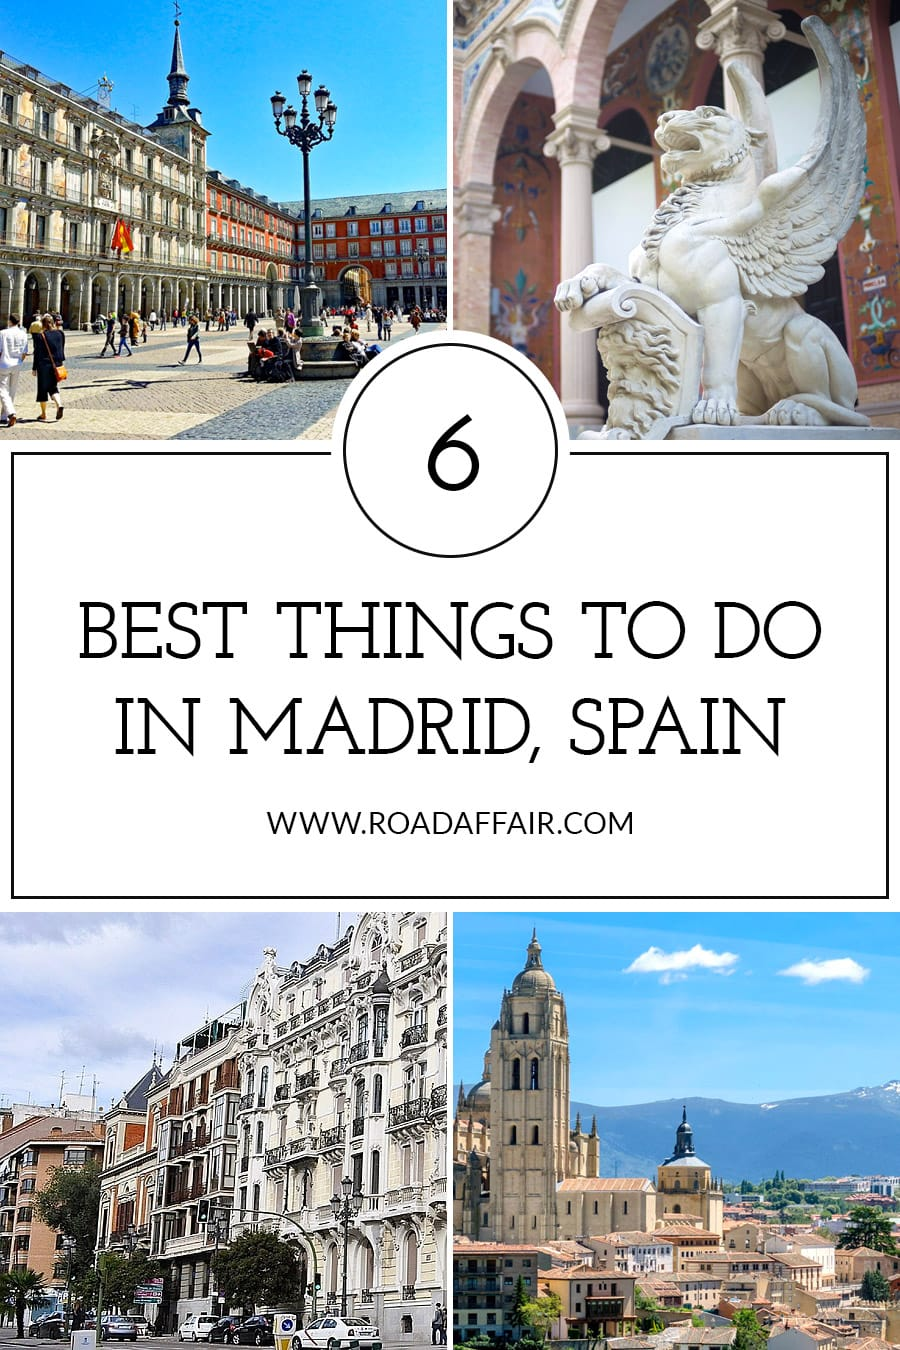 Best Things to Do in Madrid Spain